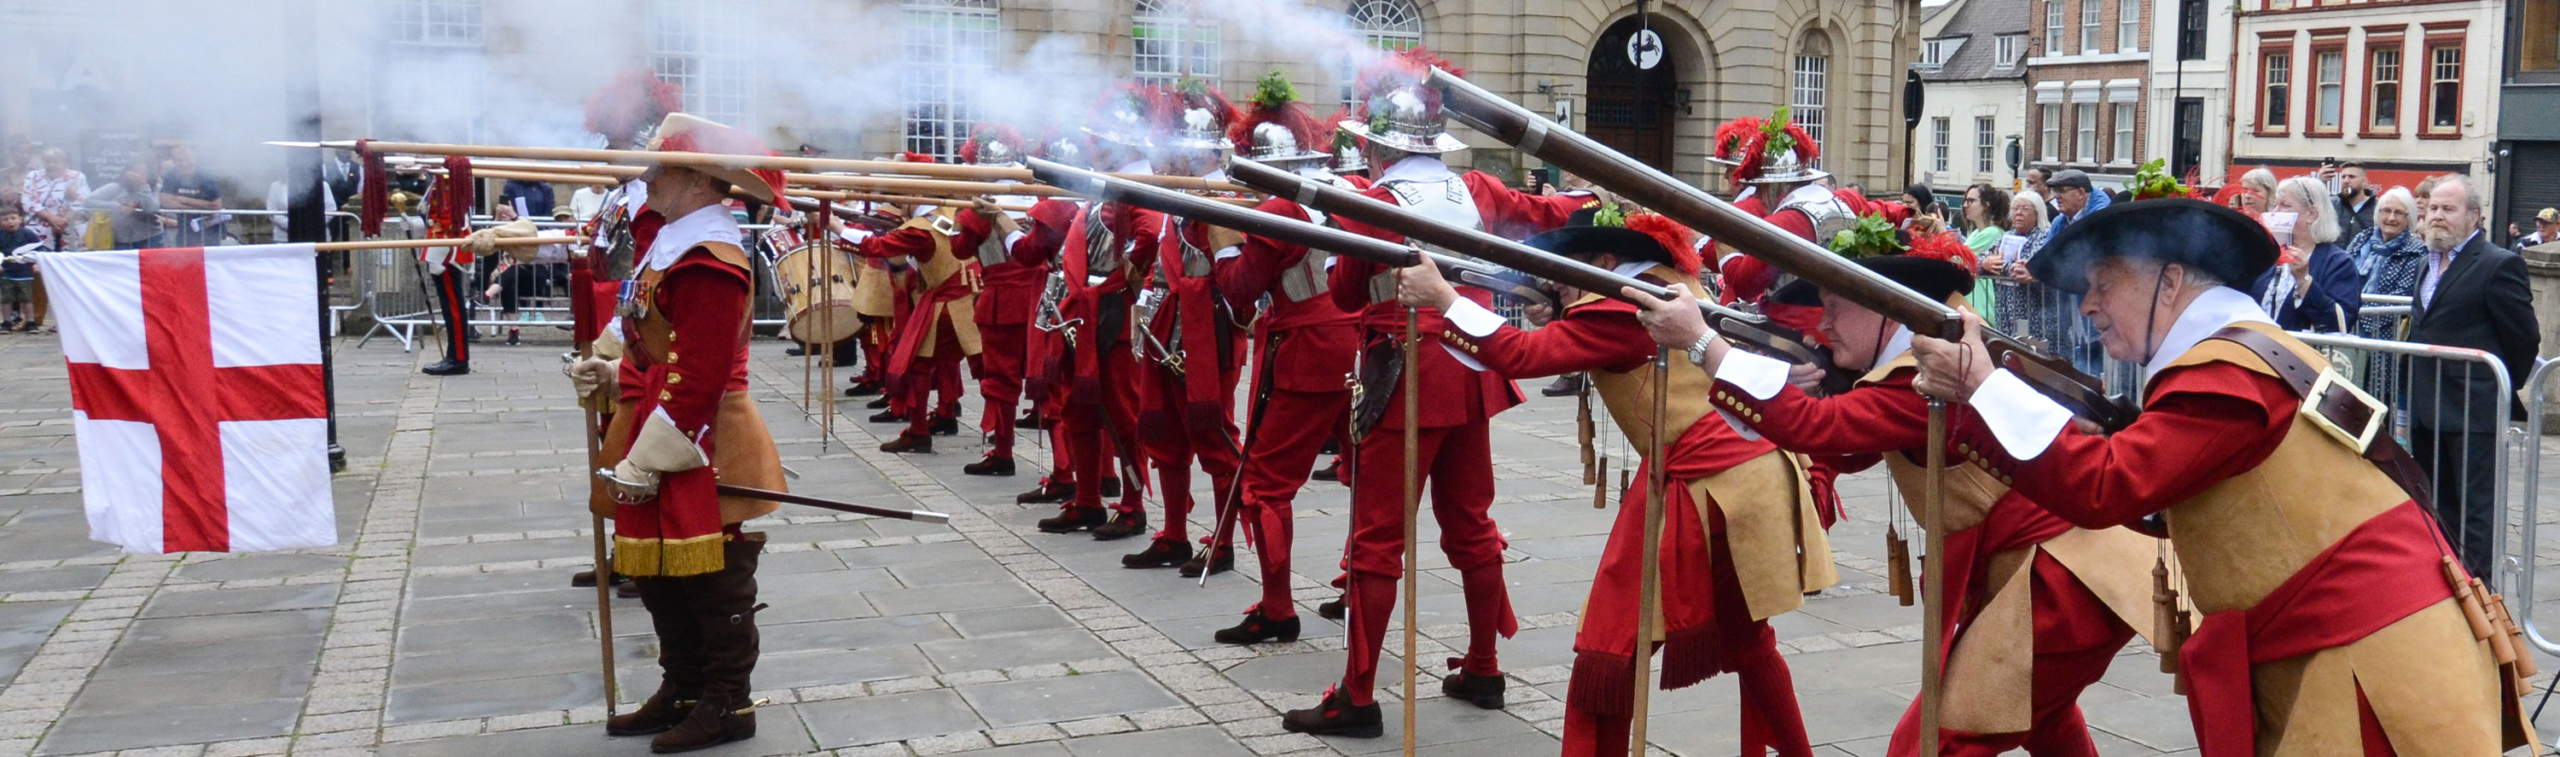 Musket shots in Northampton